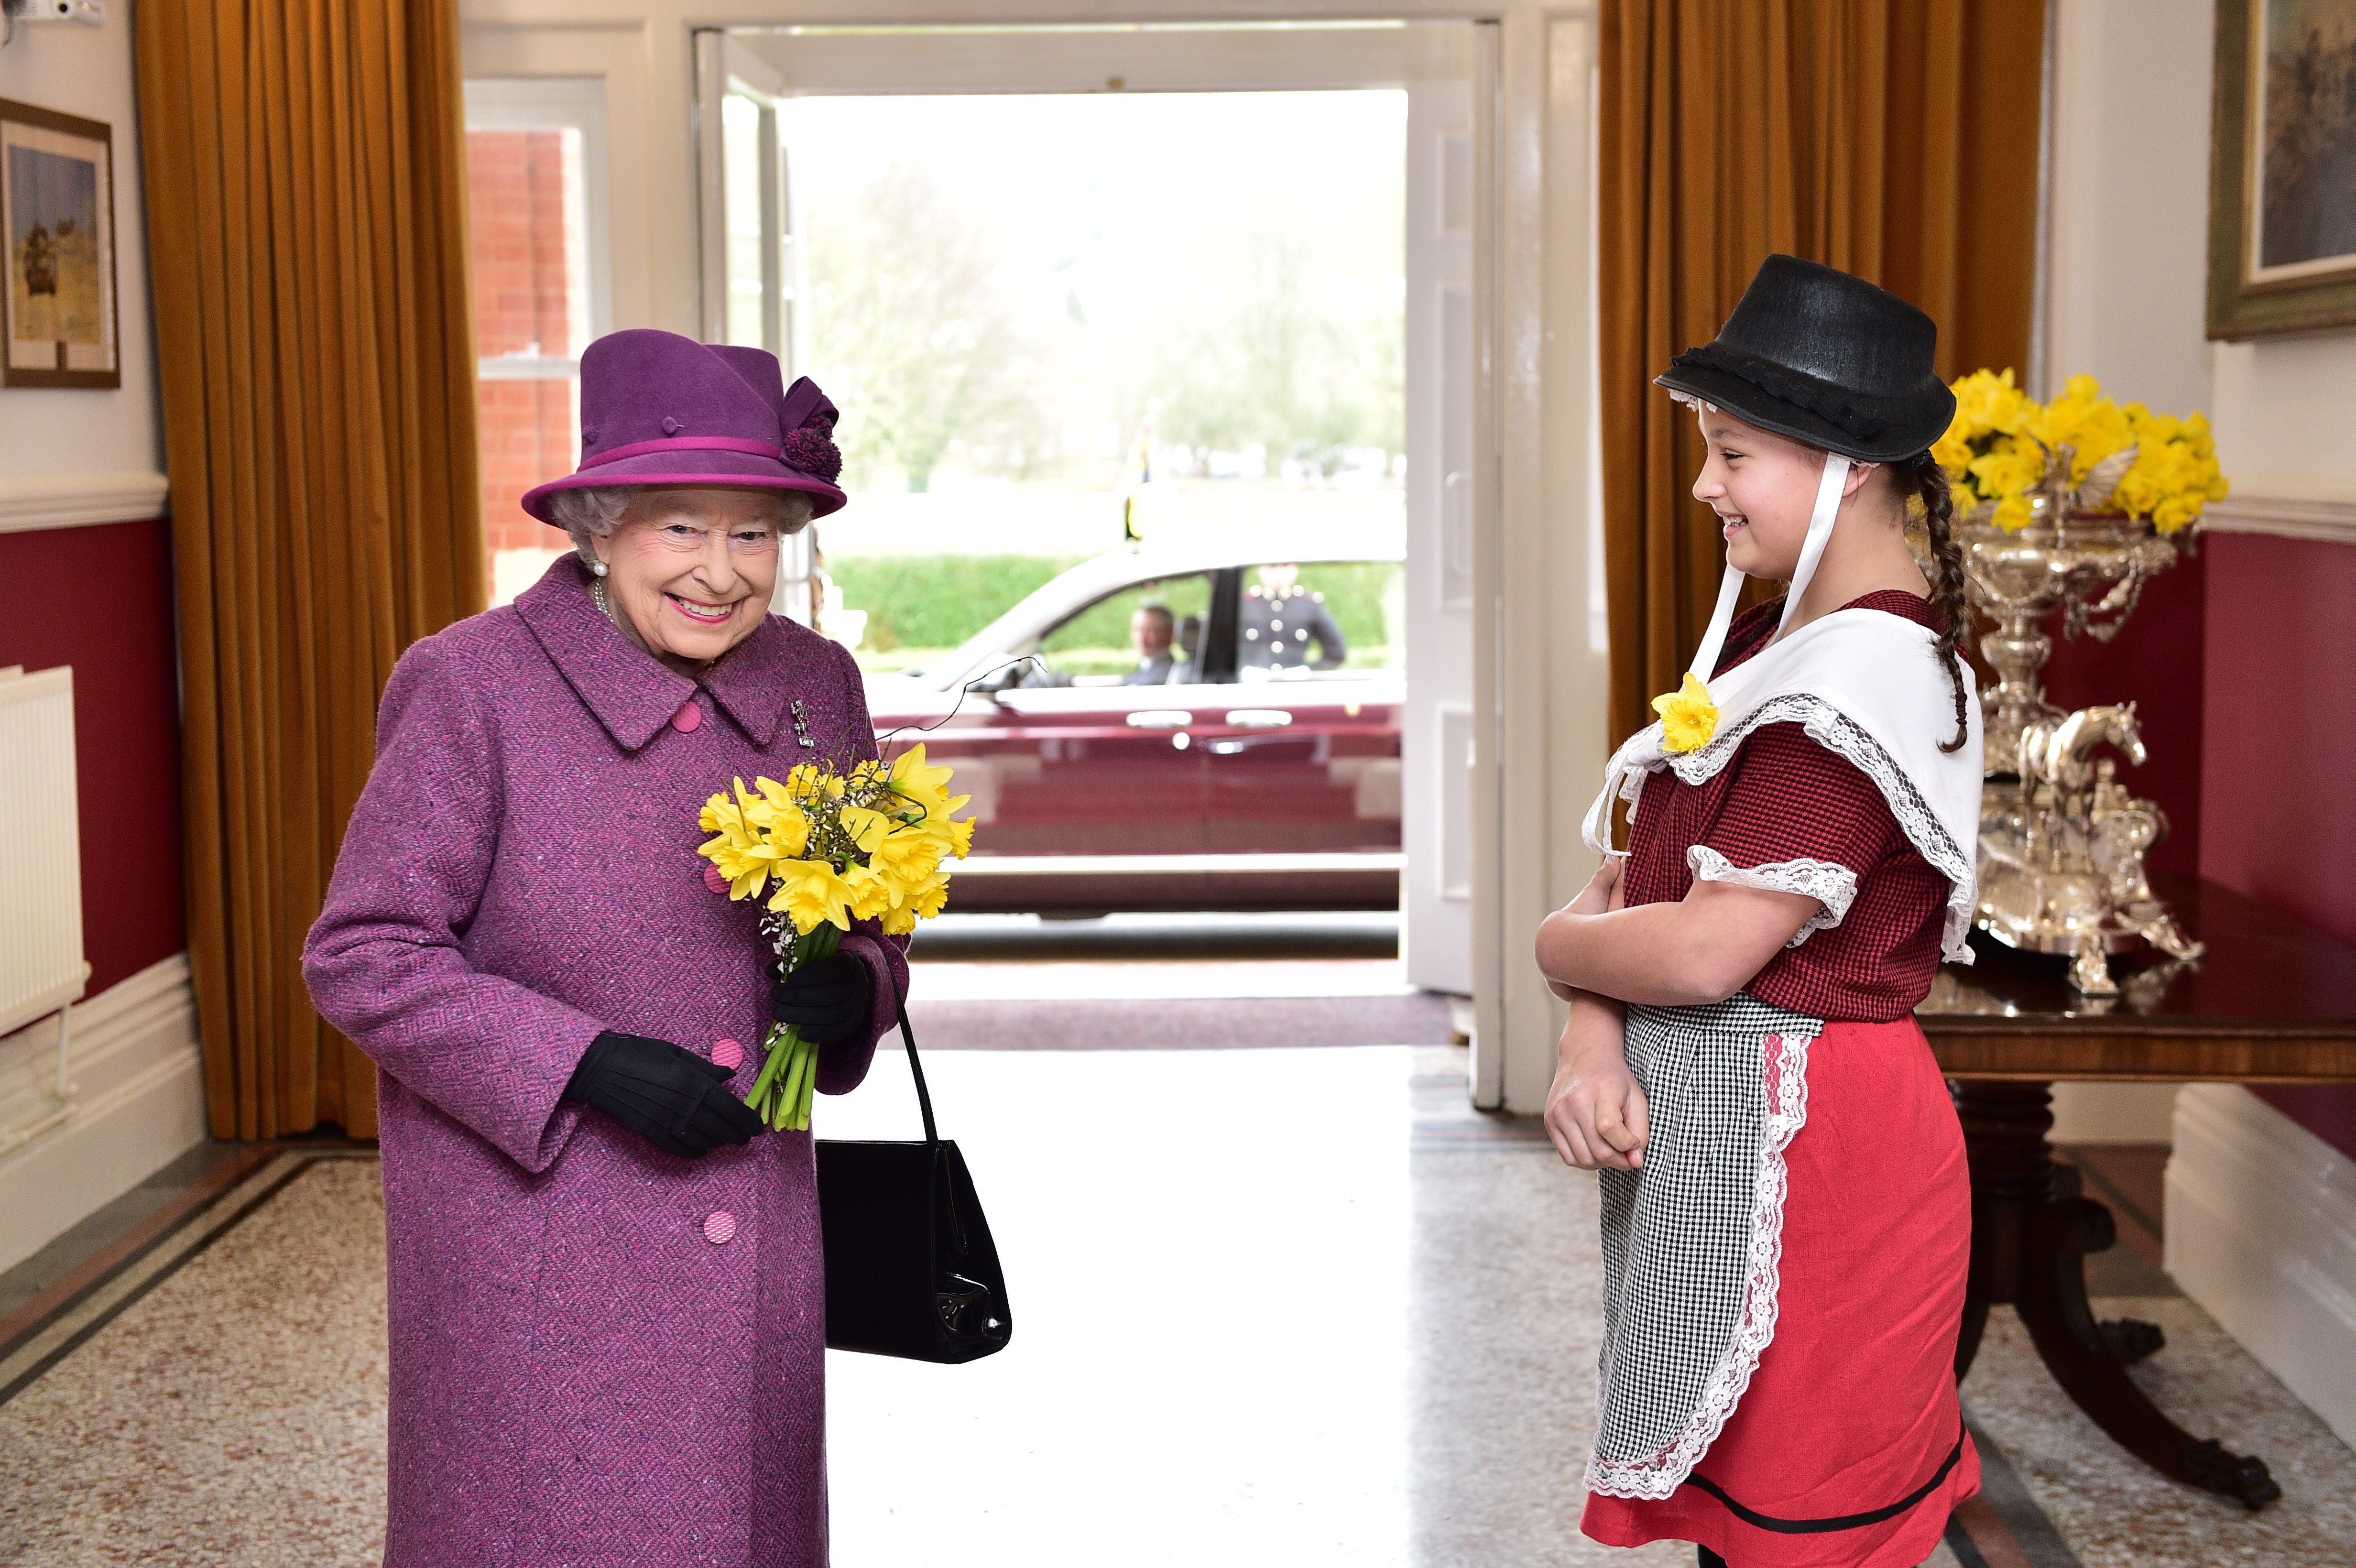 We wonder what signal the Queen is giving here?